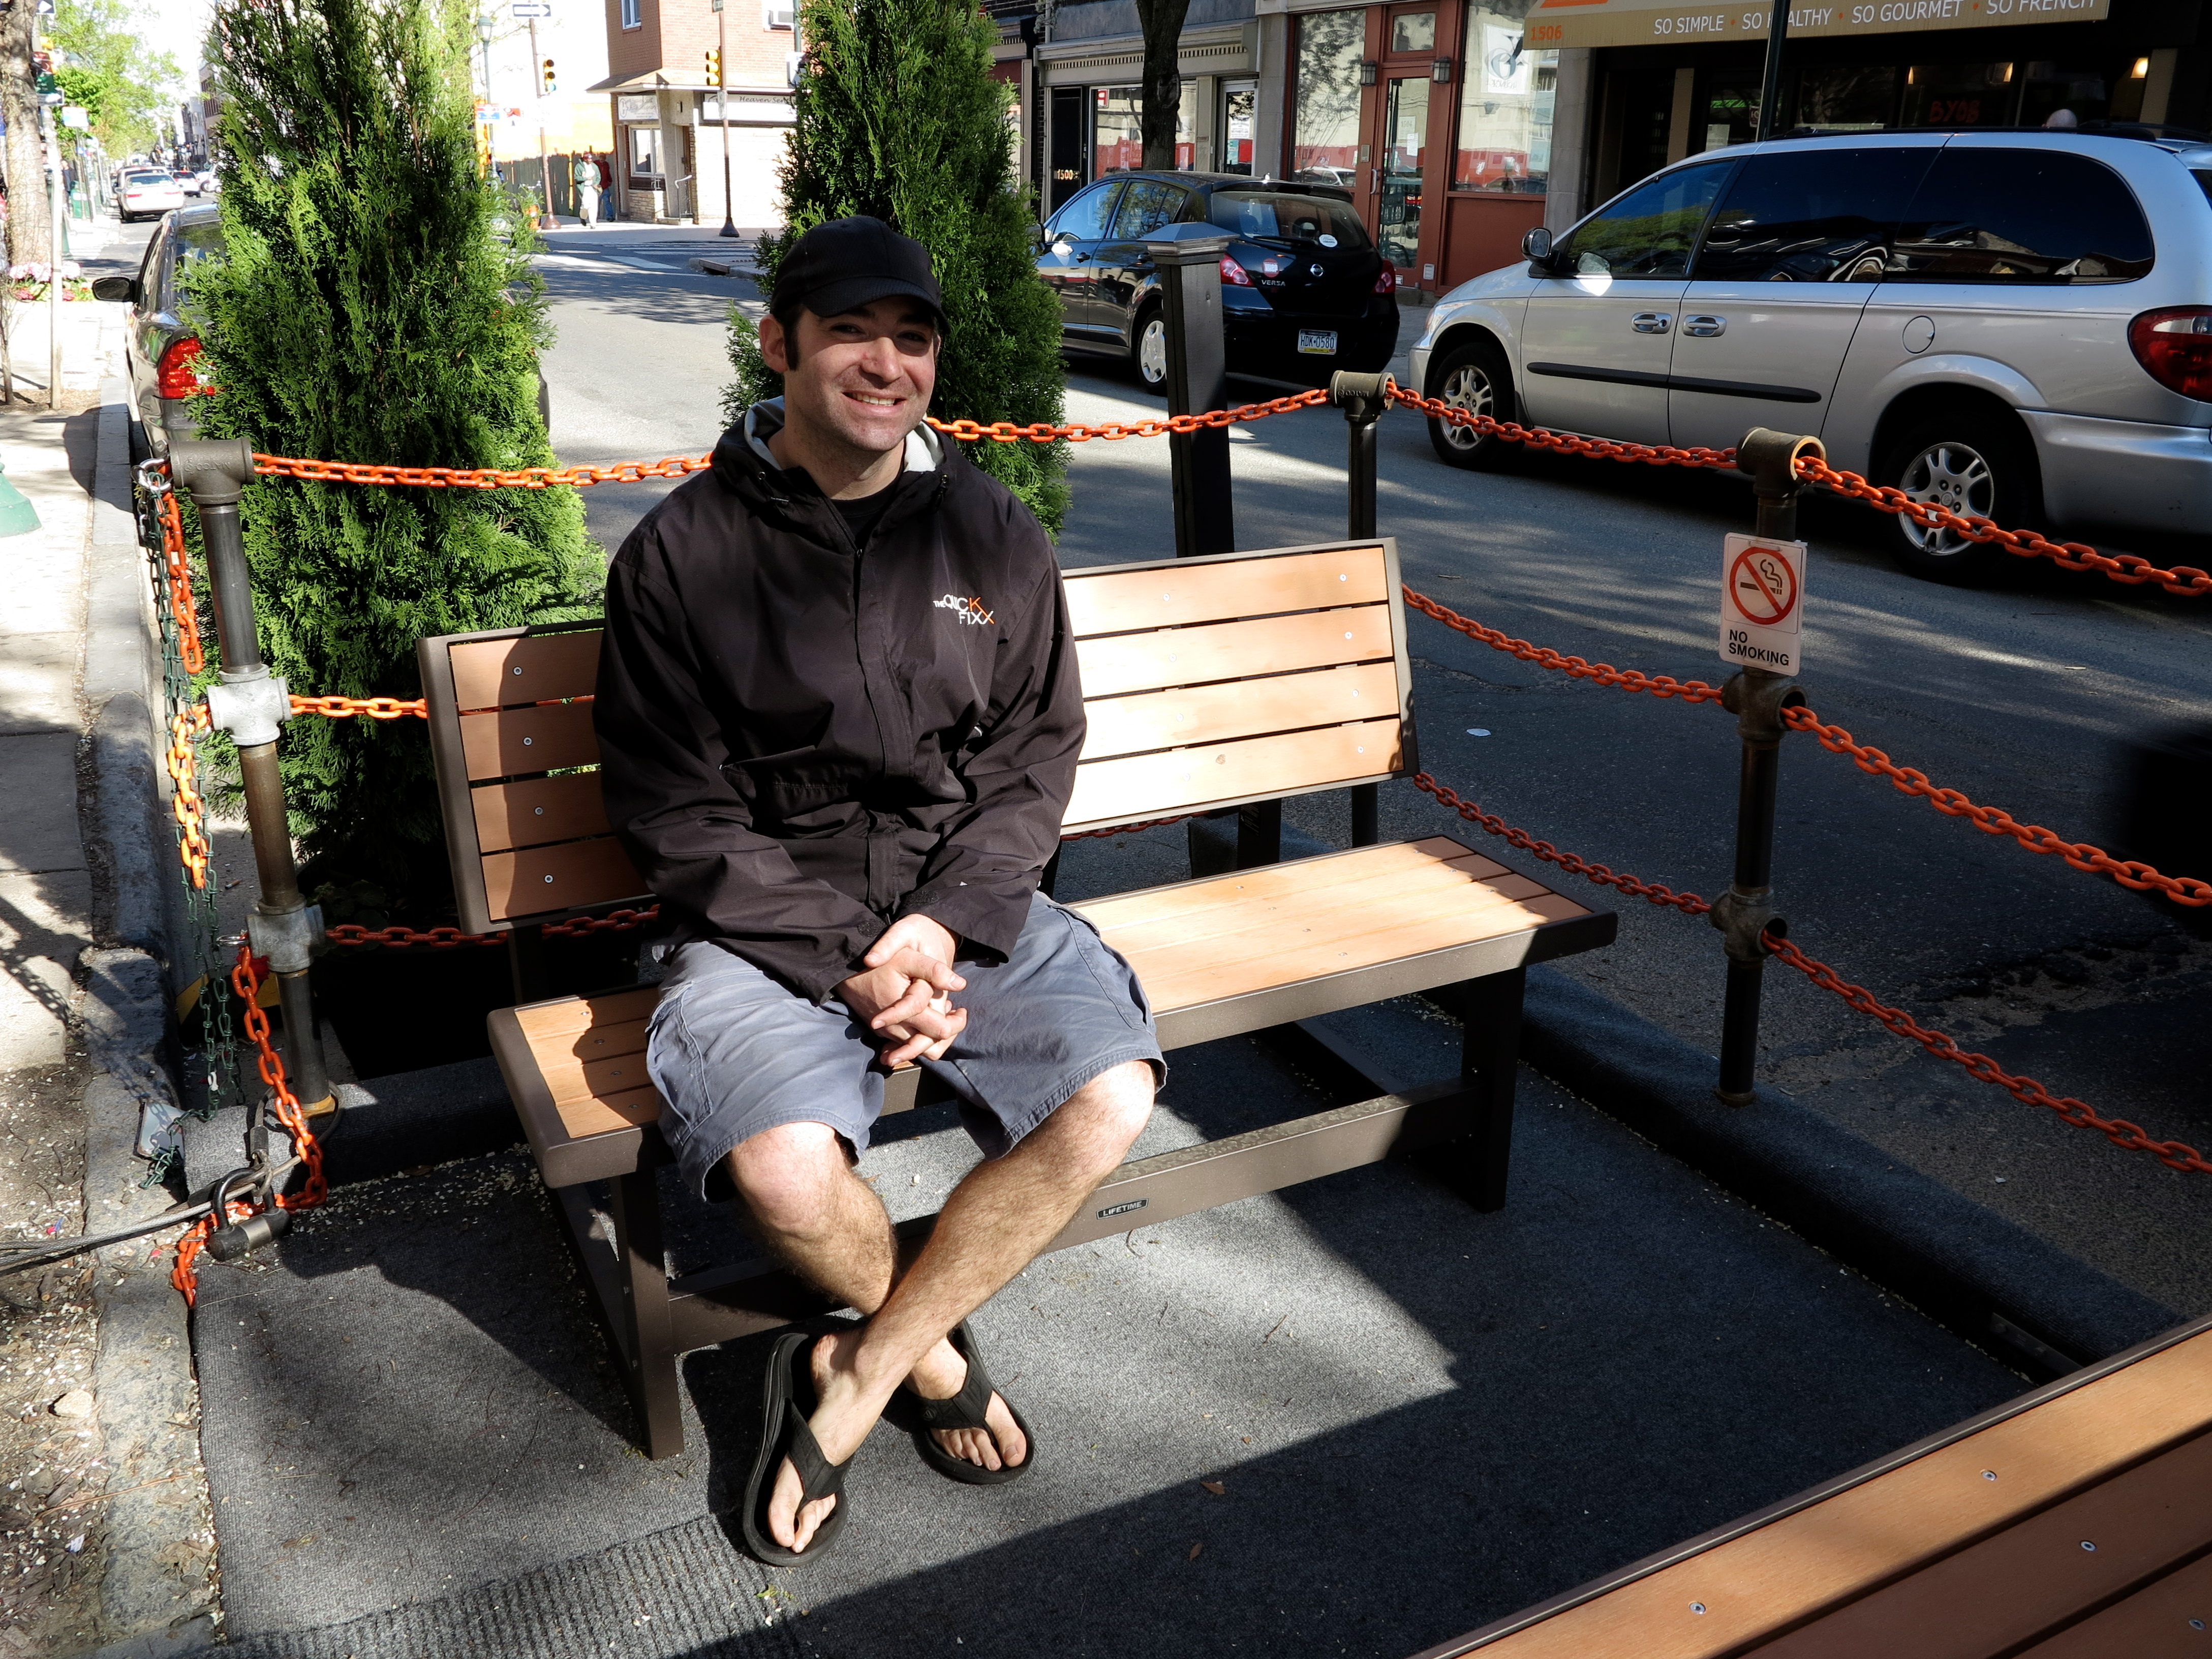 Matt Levinson, owner of The Quick Fixx giving the new parklet a test